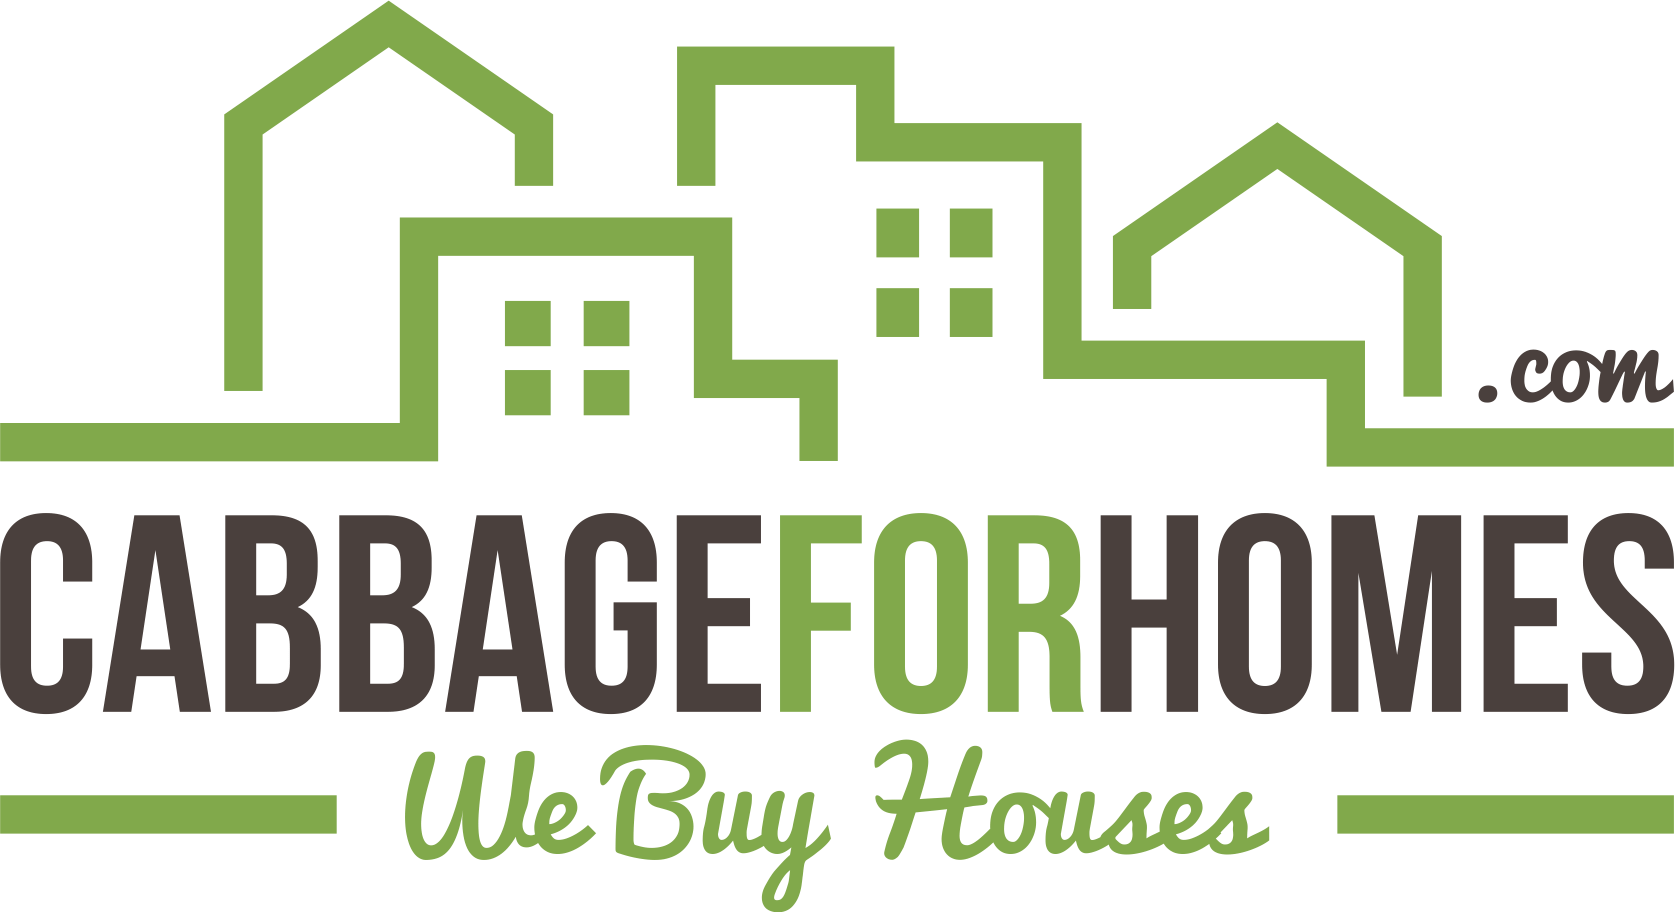 Cabbage For Homes logo